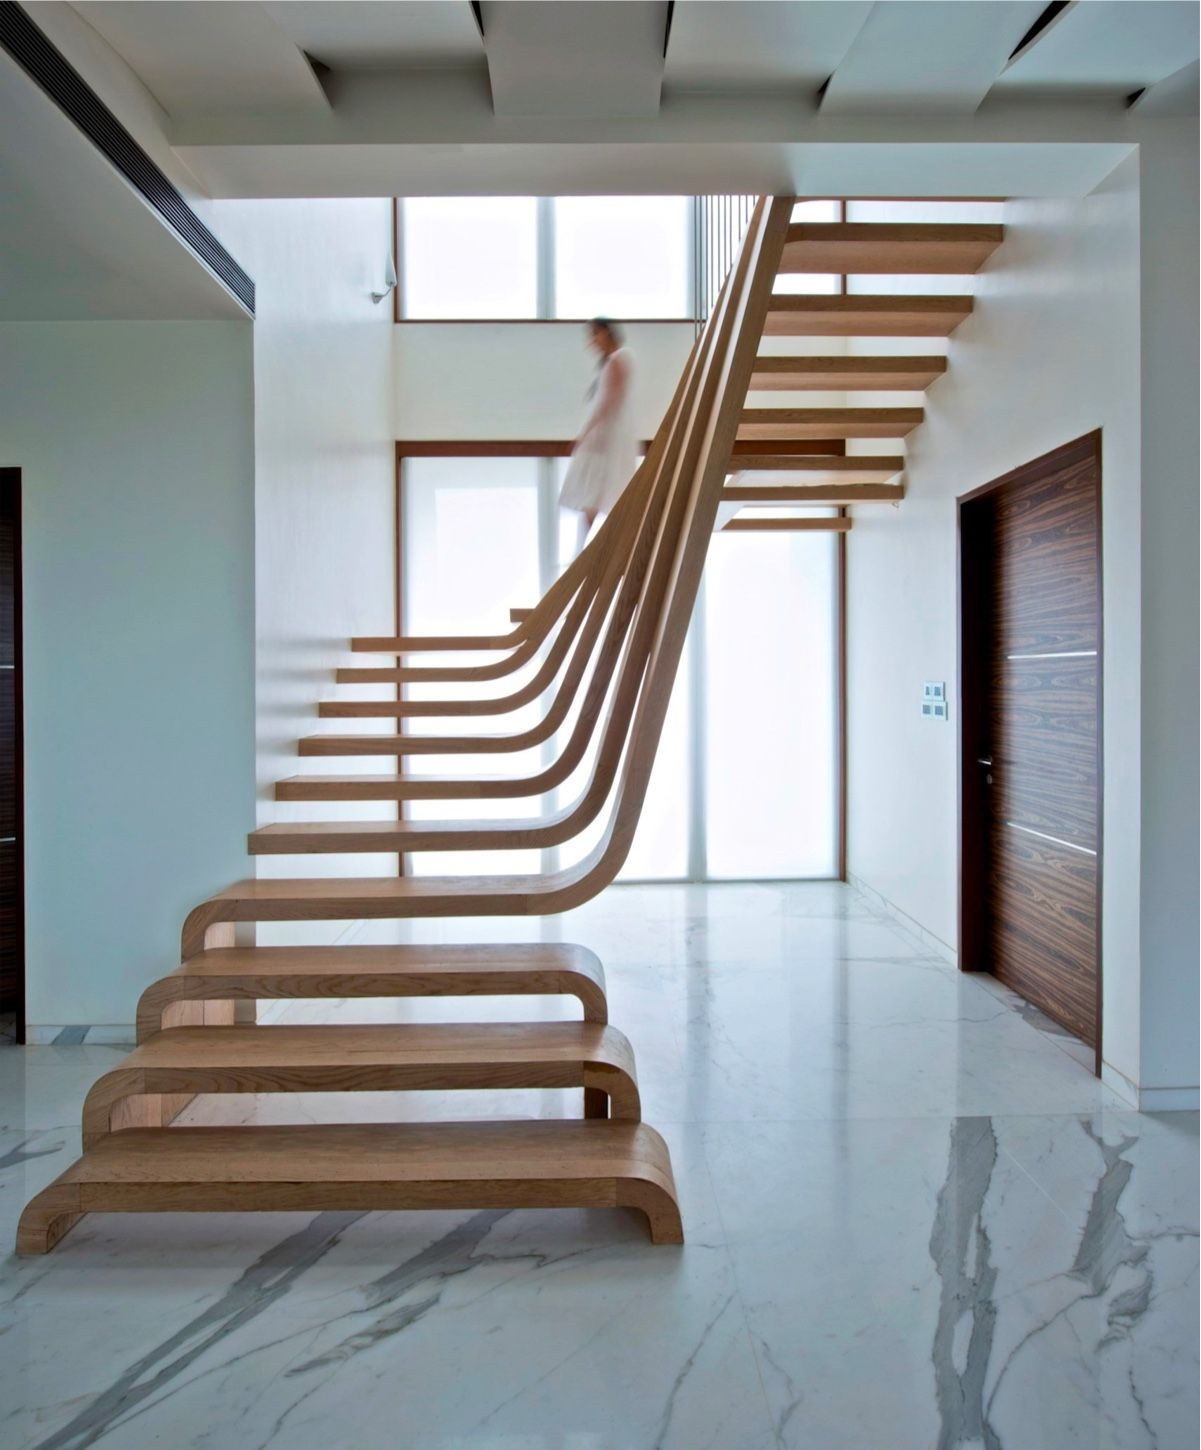 Colorful Staircase Designs 30 Ideas To Consider For A: Homedesigning: (via 25 Unique Staircase Designs To Take